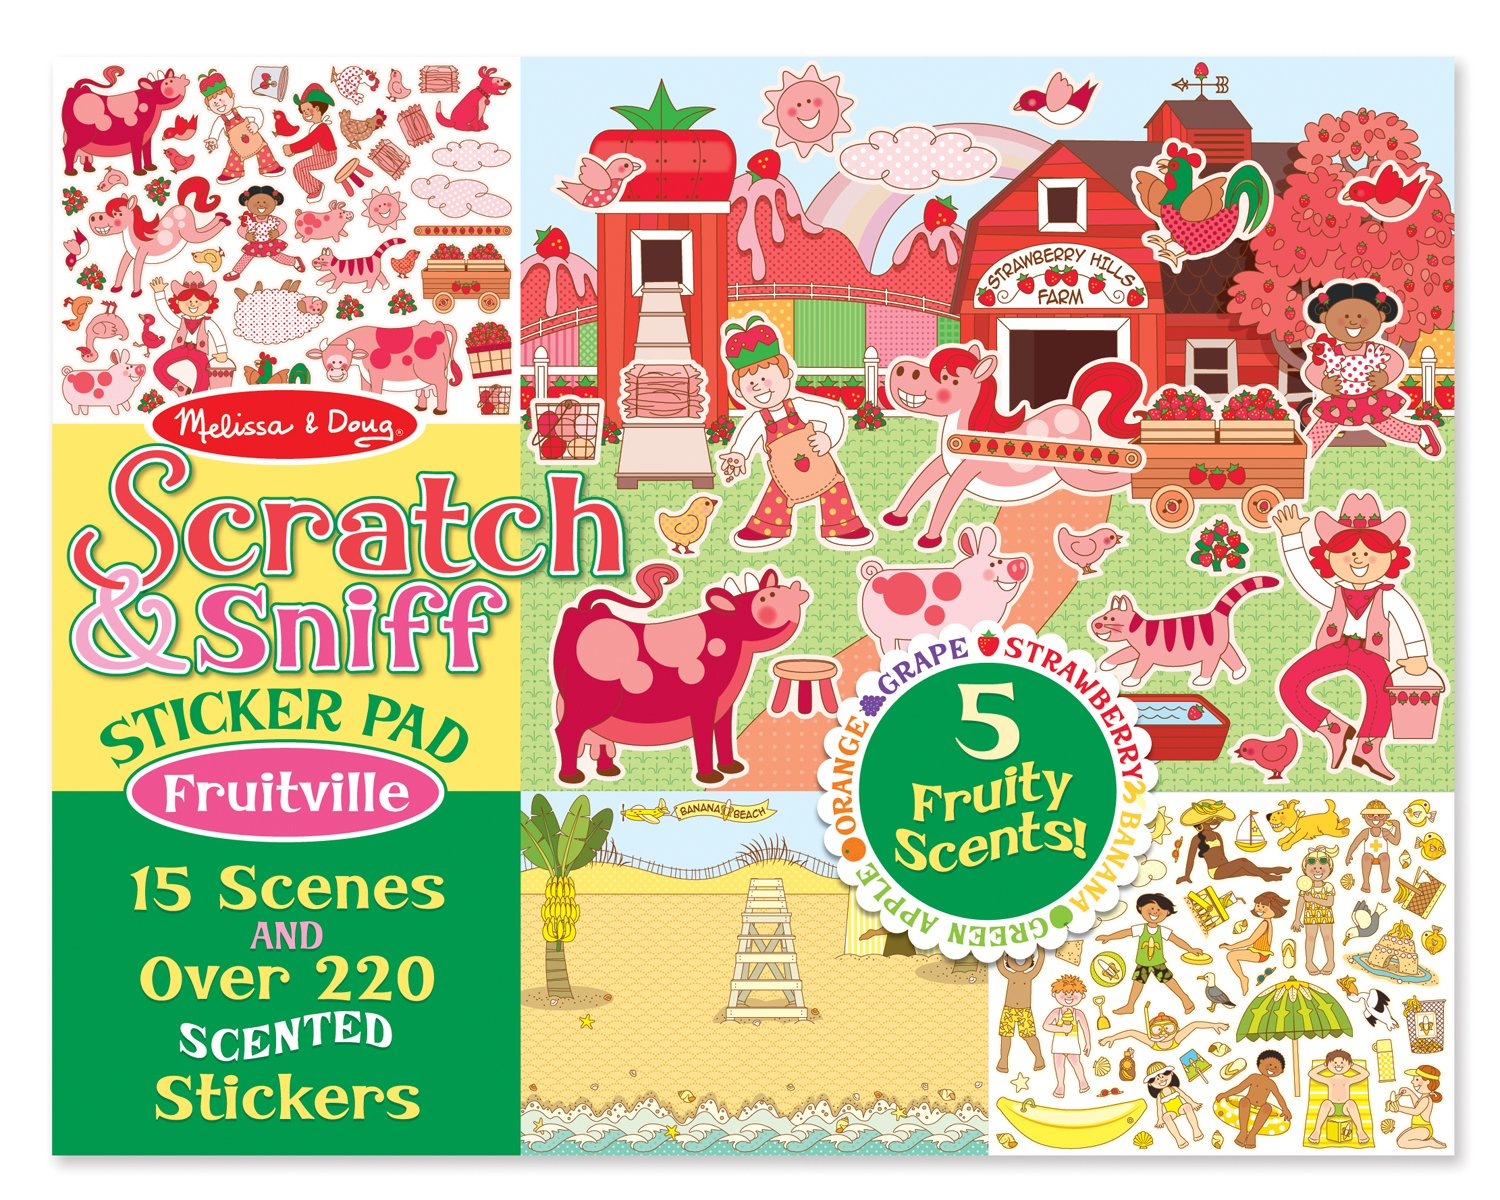 Melissa & Doug Scratch and Sniff Sticker Pad: Fruitville – 220+ Fruit-Scented Stickers $4.99